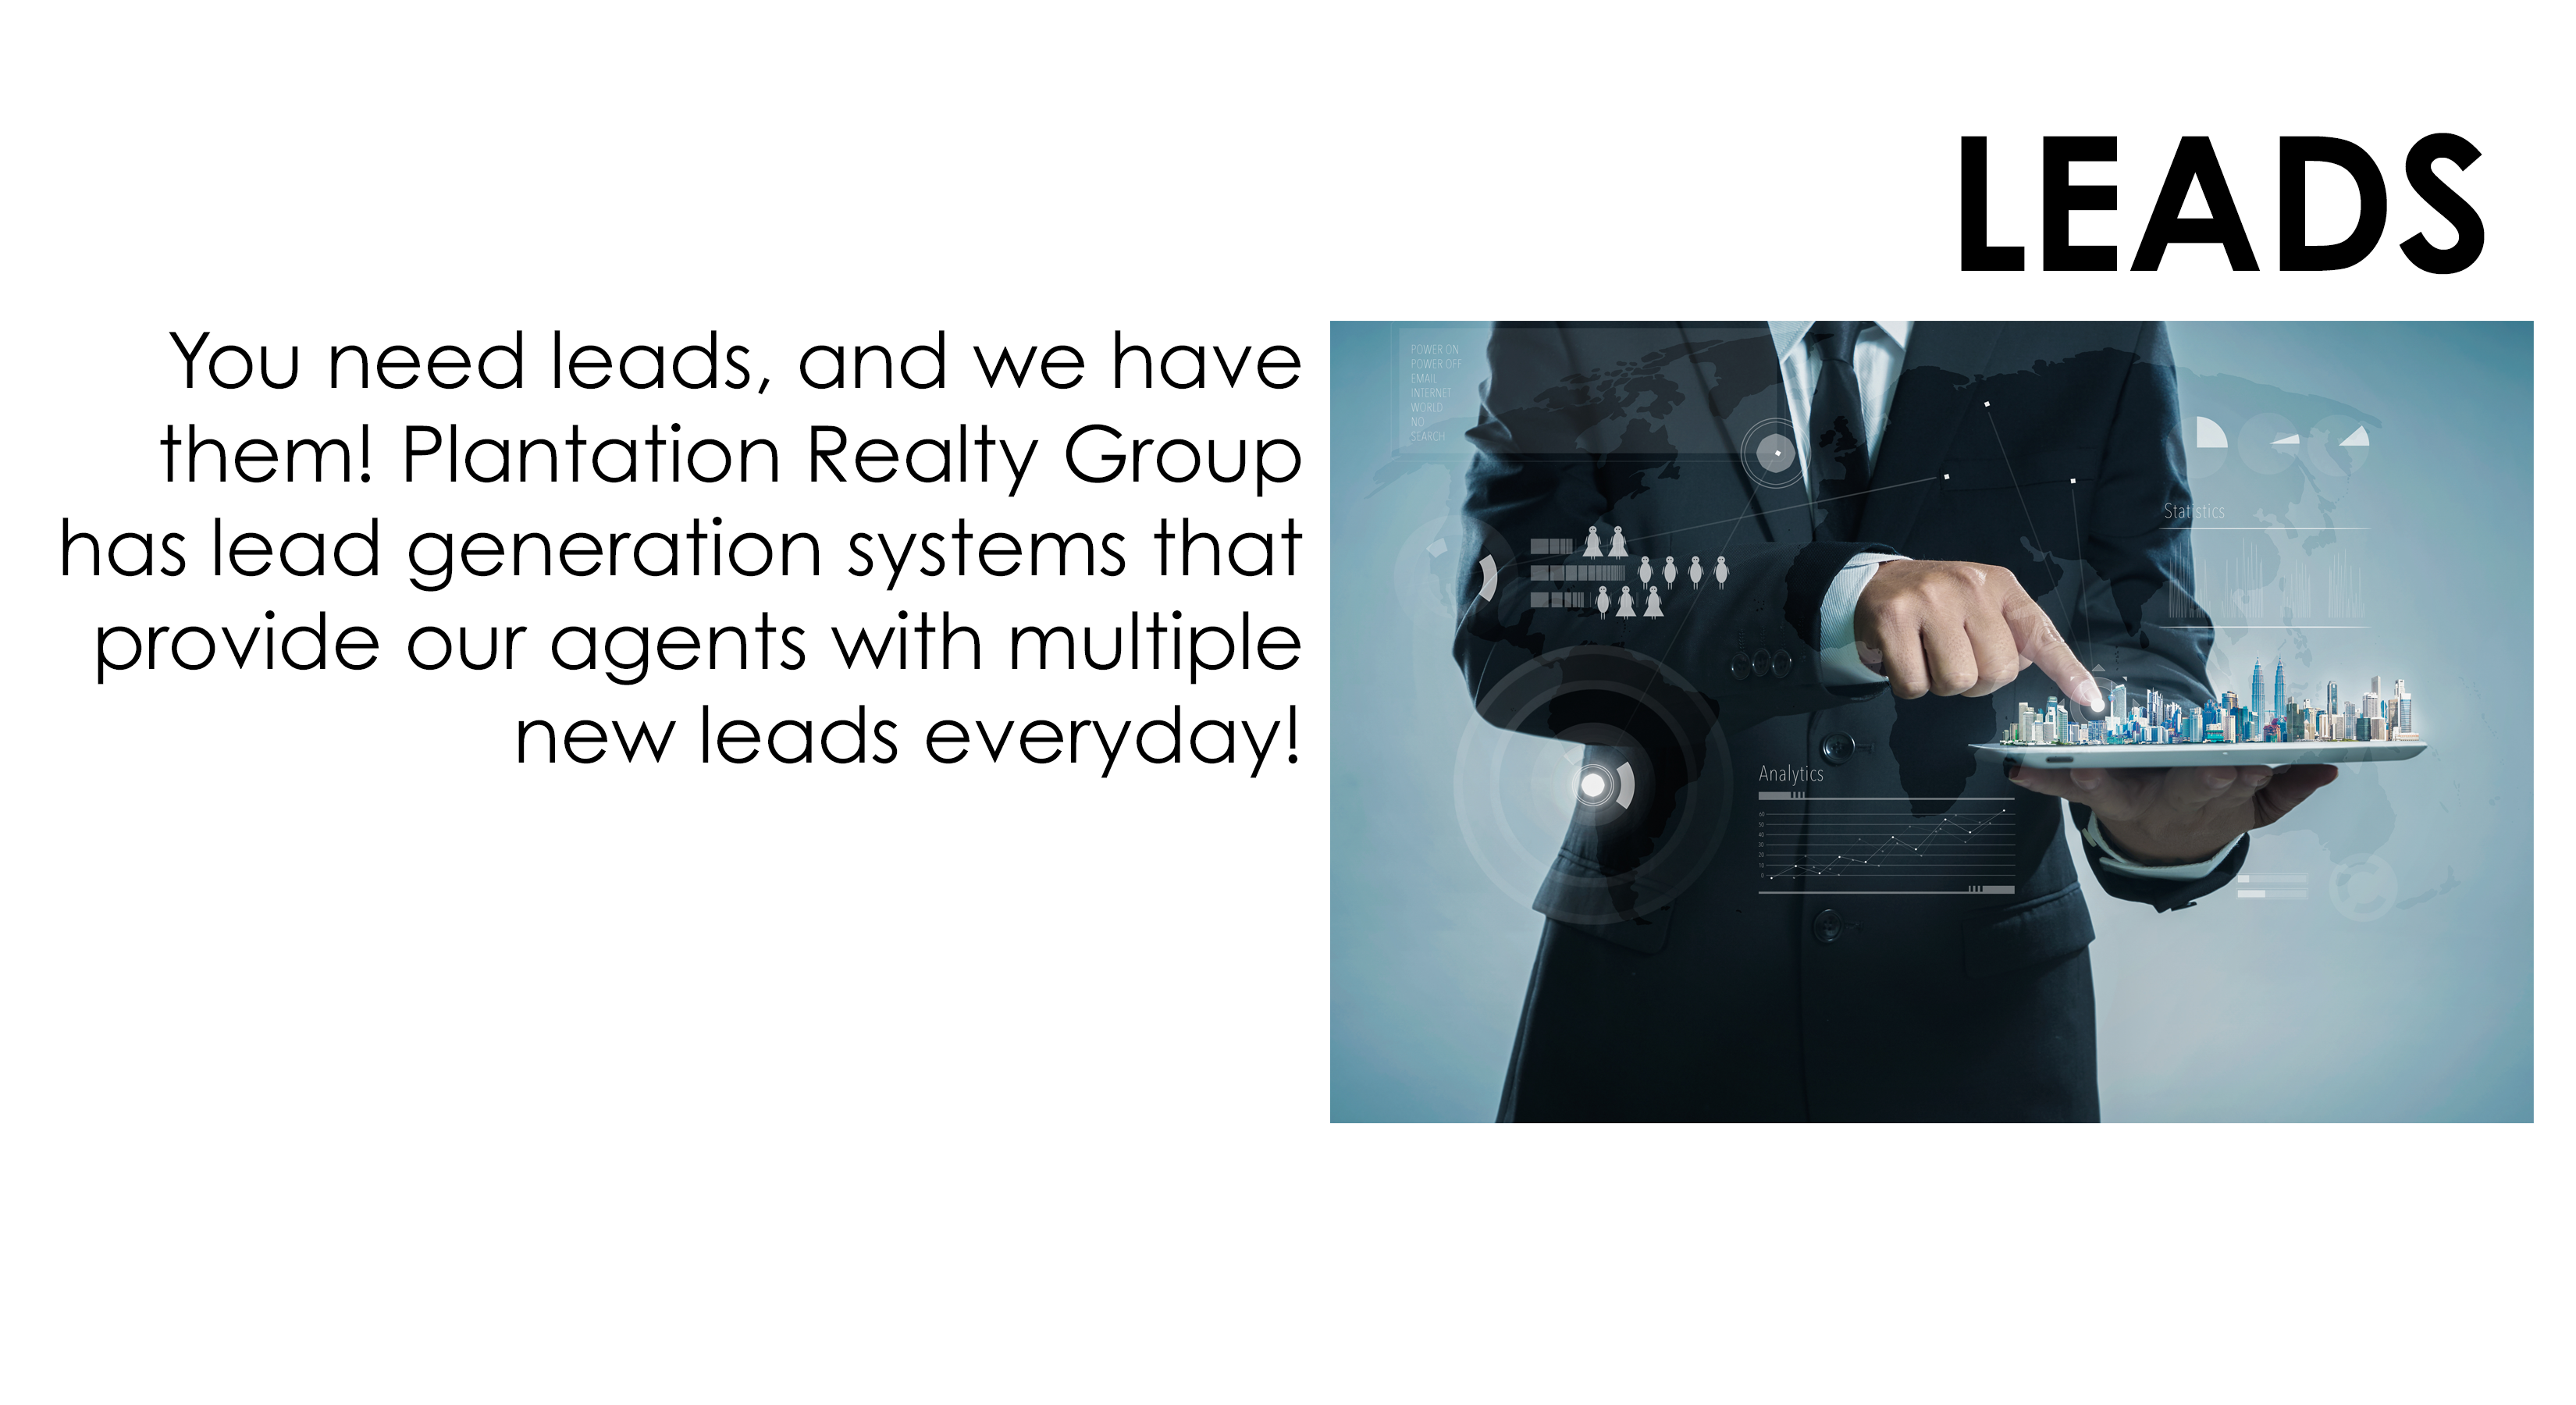 Join Plantation Realty Group Leads